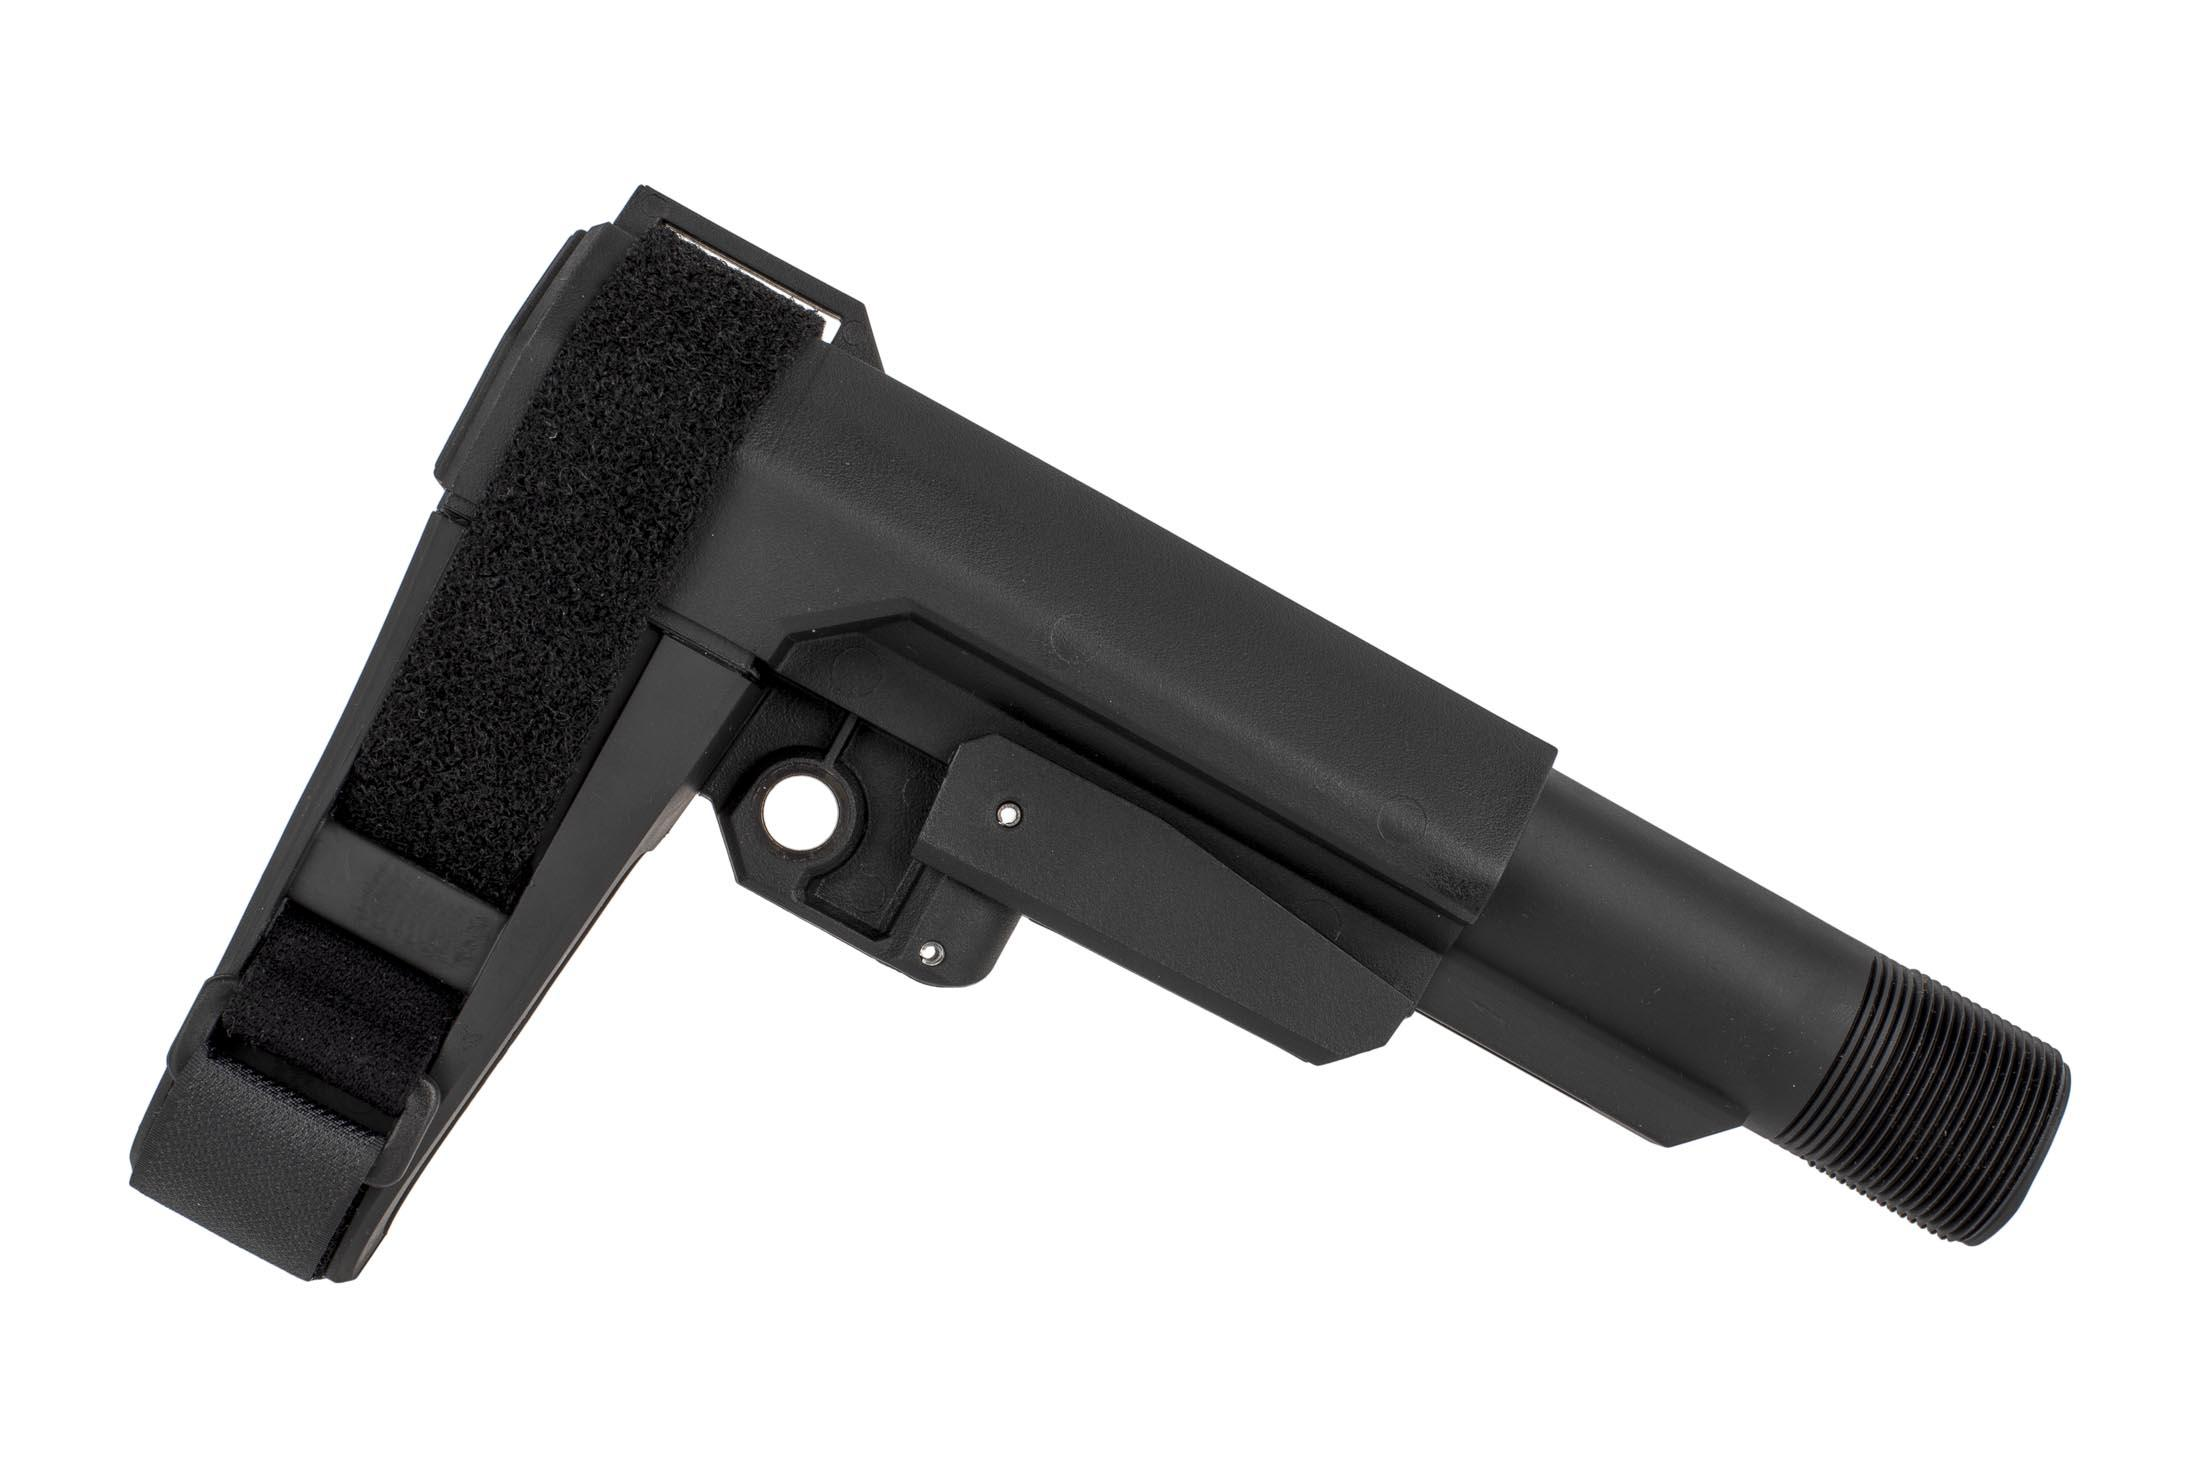 The CMMG RipBrace kit CQB features 5 positions of length adjustment for a compact pistol